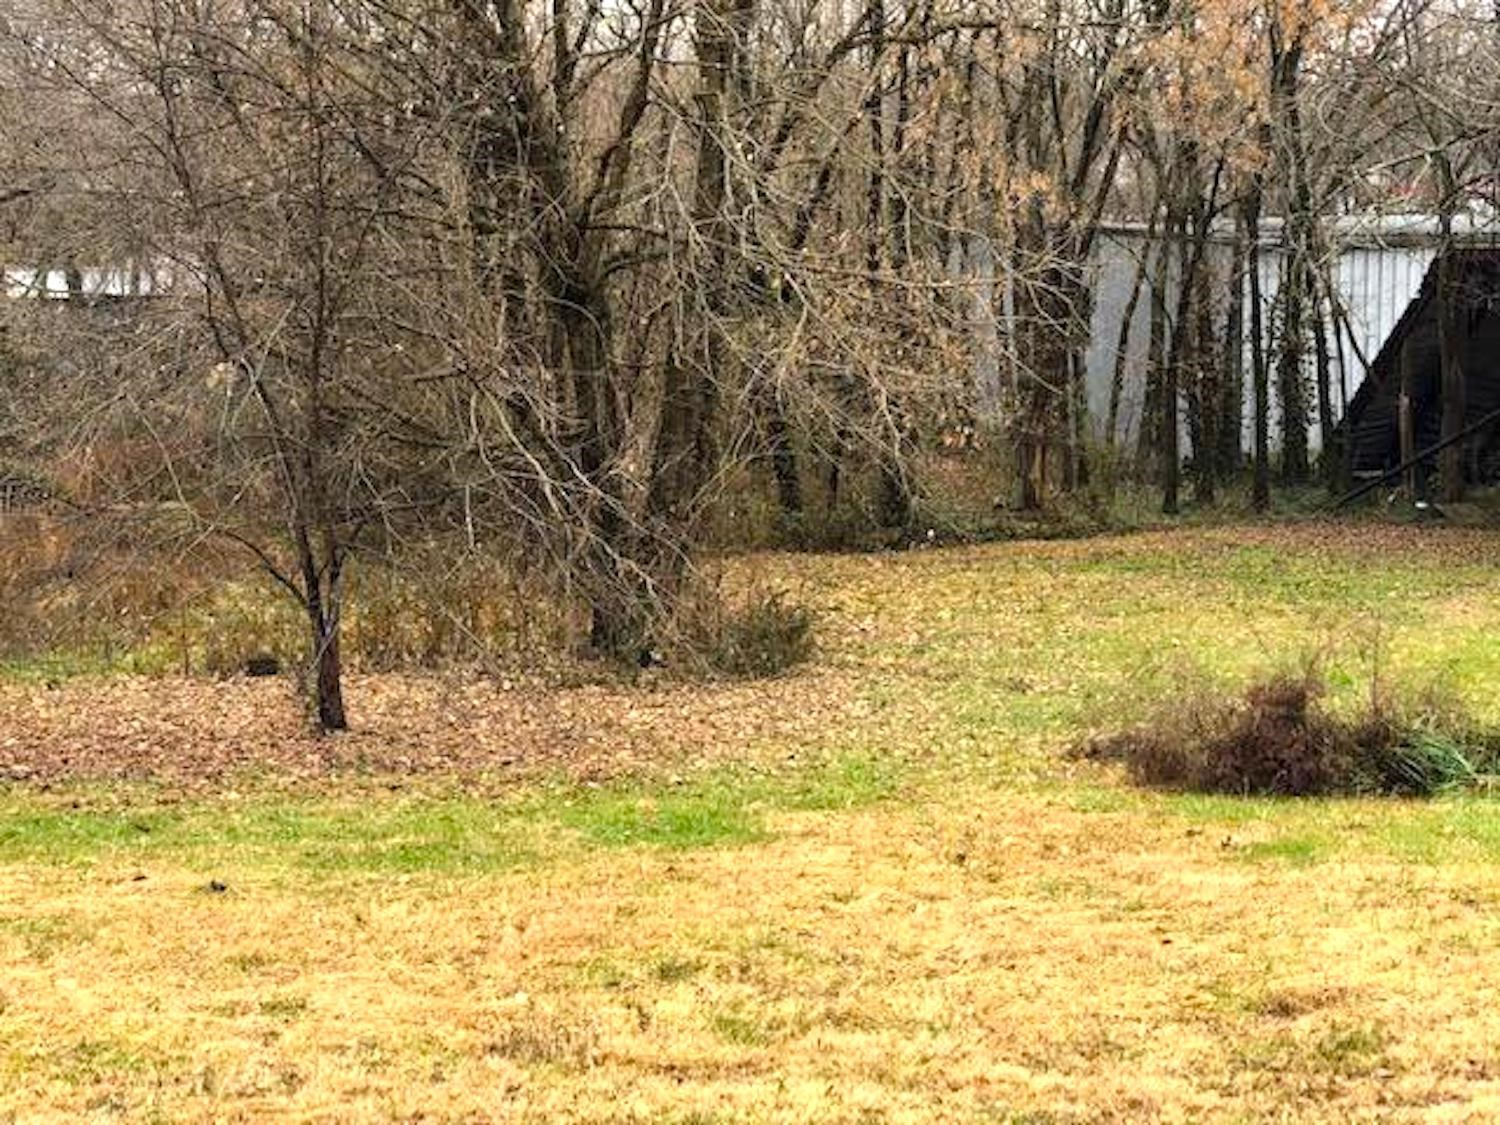 Residential Lots for Sale in Alton, MO